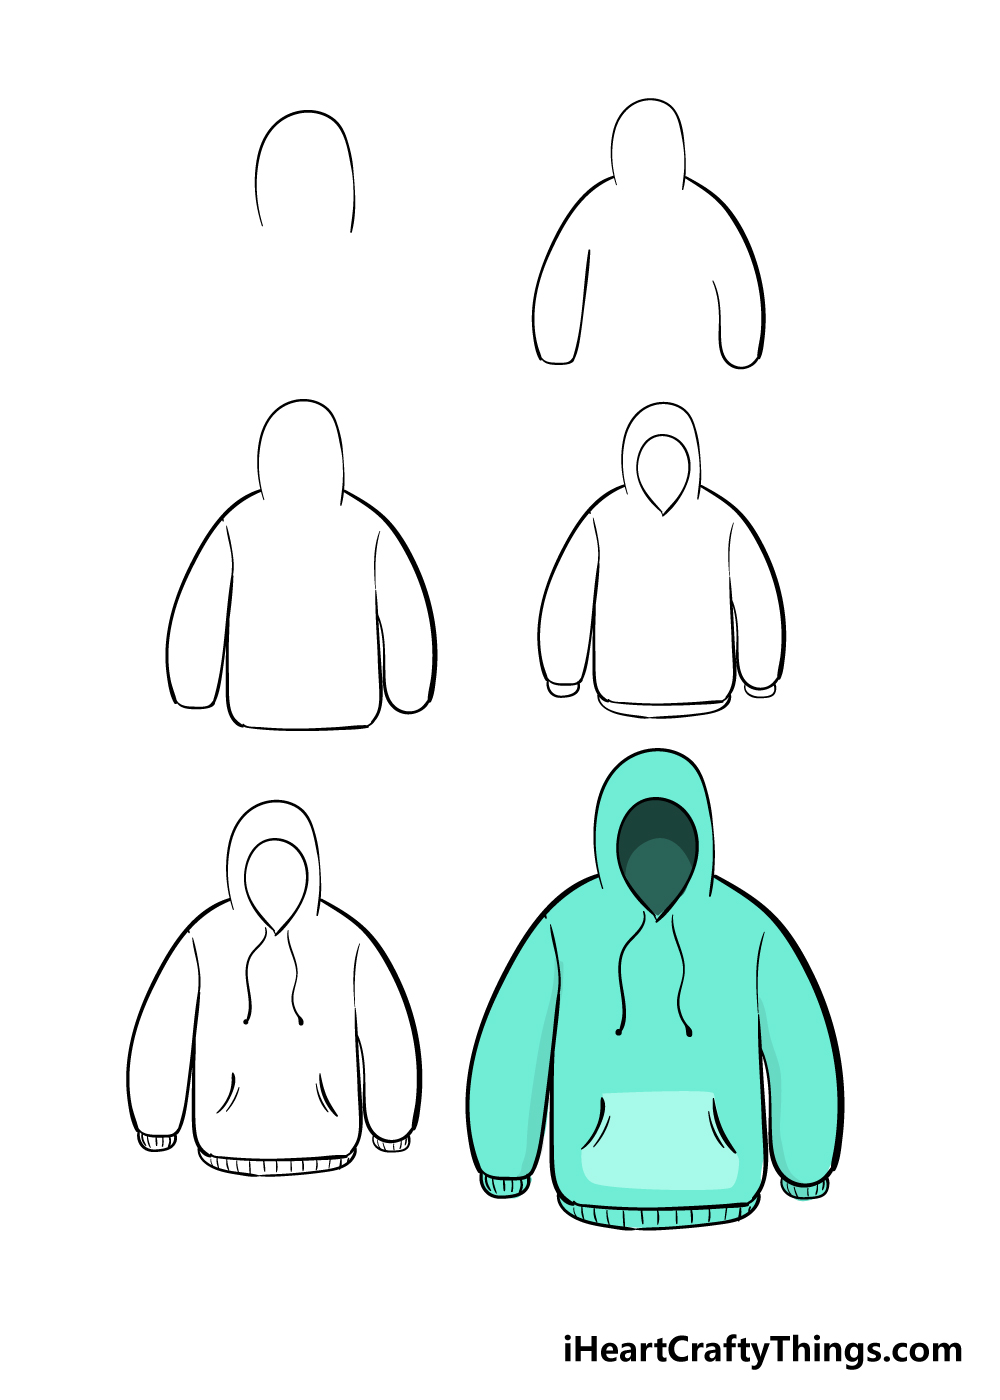 how to draw hoodie in 6 steps